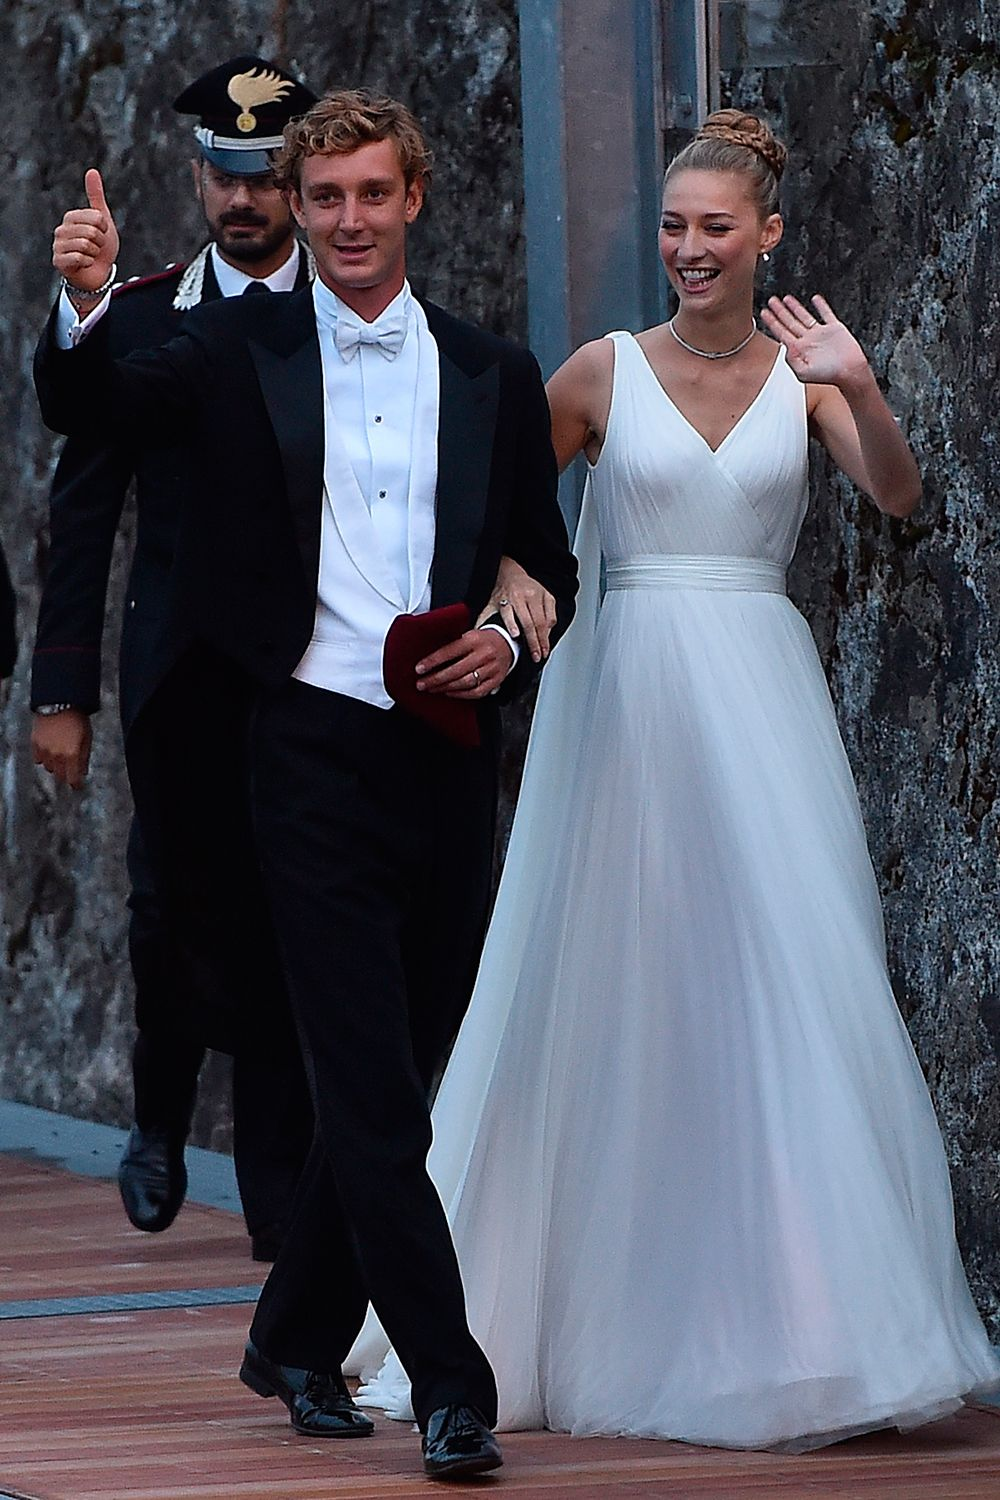 Beatrice Casiraghi wears Armani for second wedding